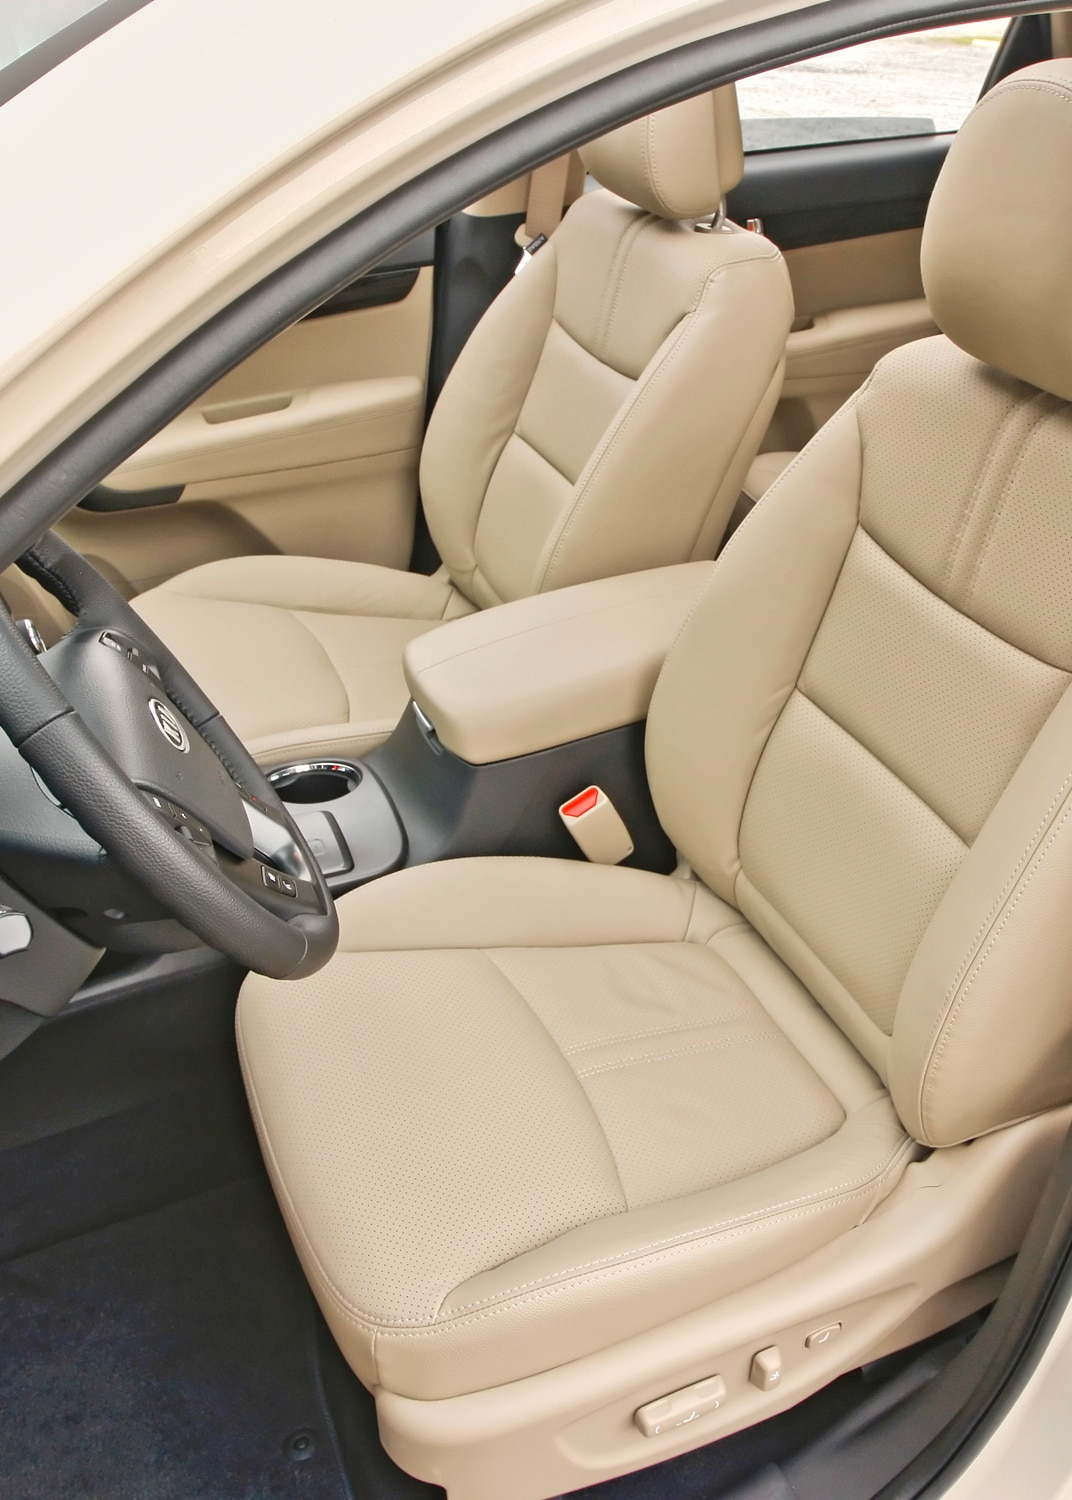 2012 Kia Sorento Front Seating